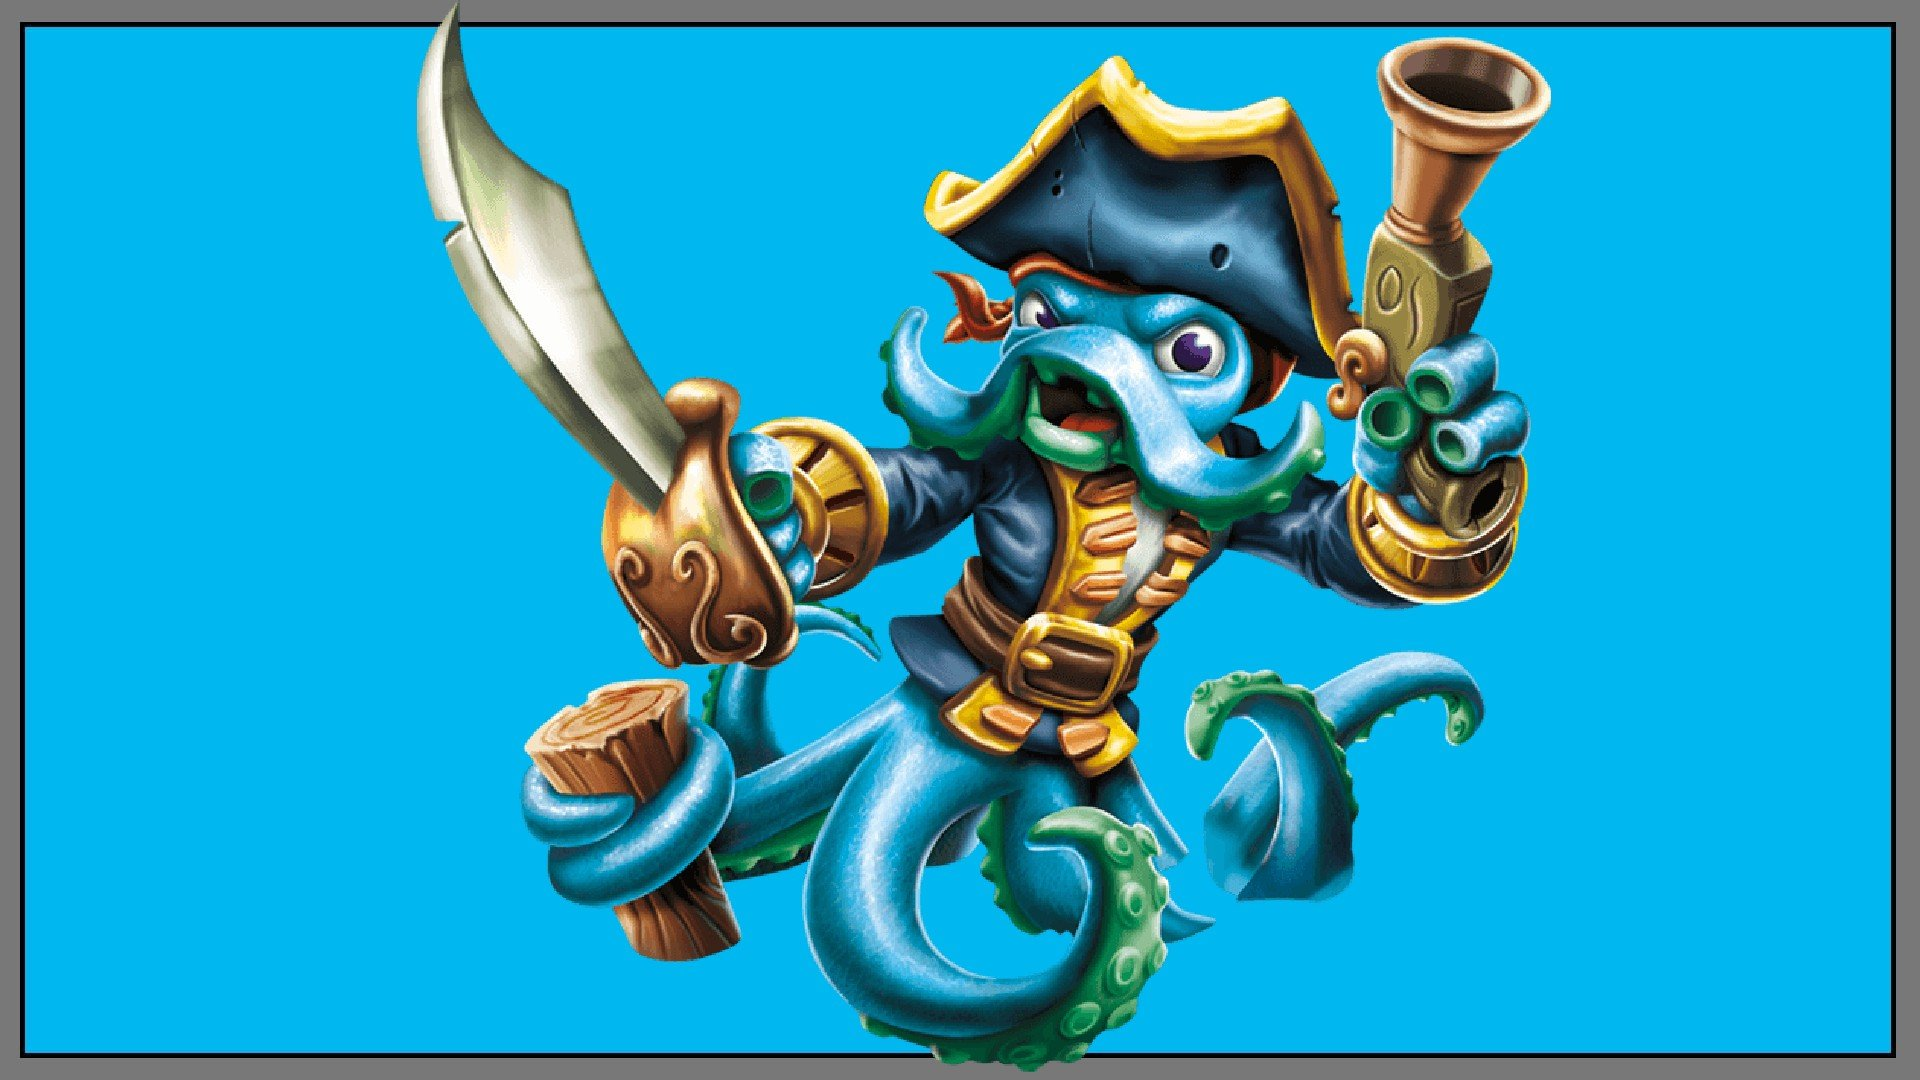 skylanders trap team wallpaper - photo #20